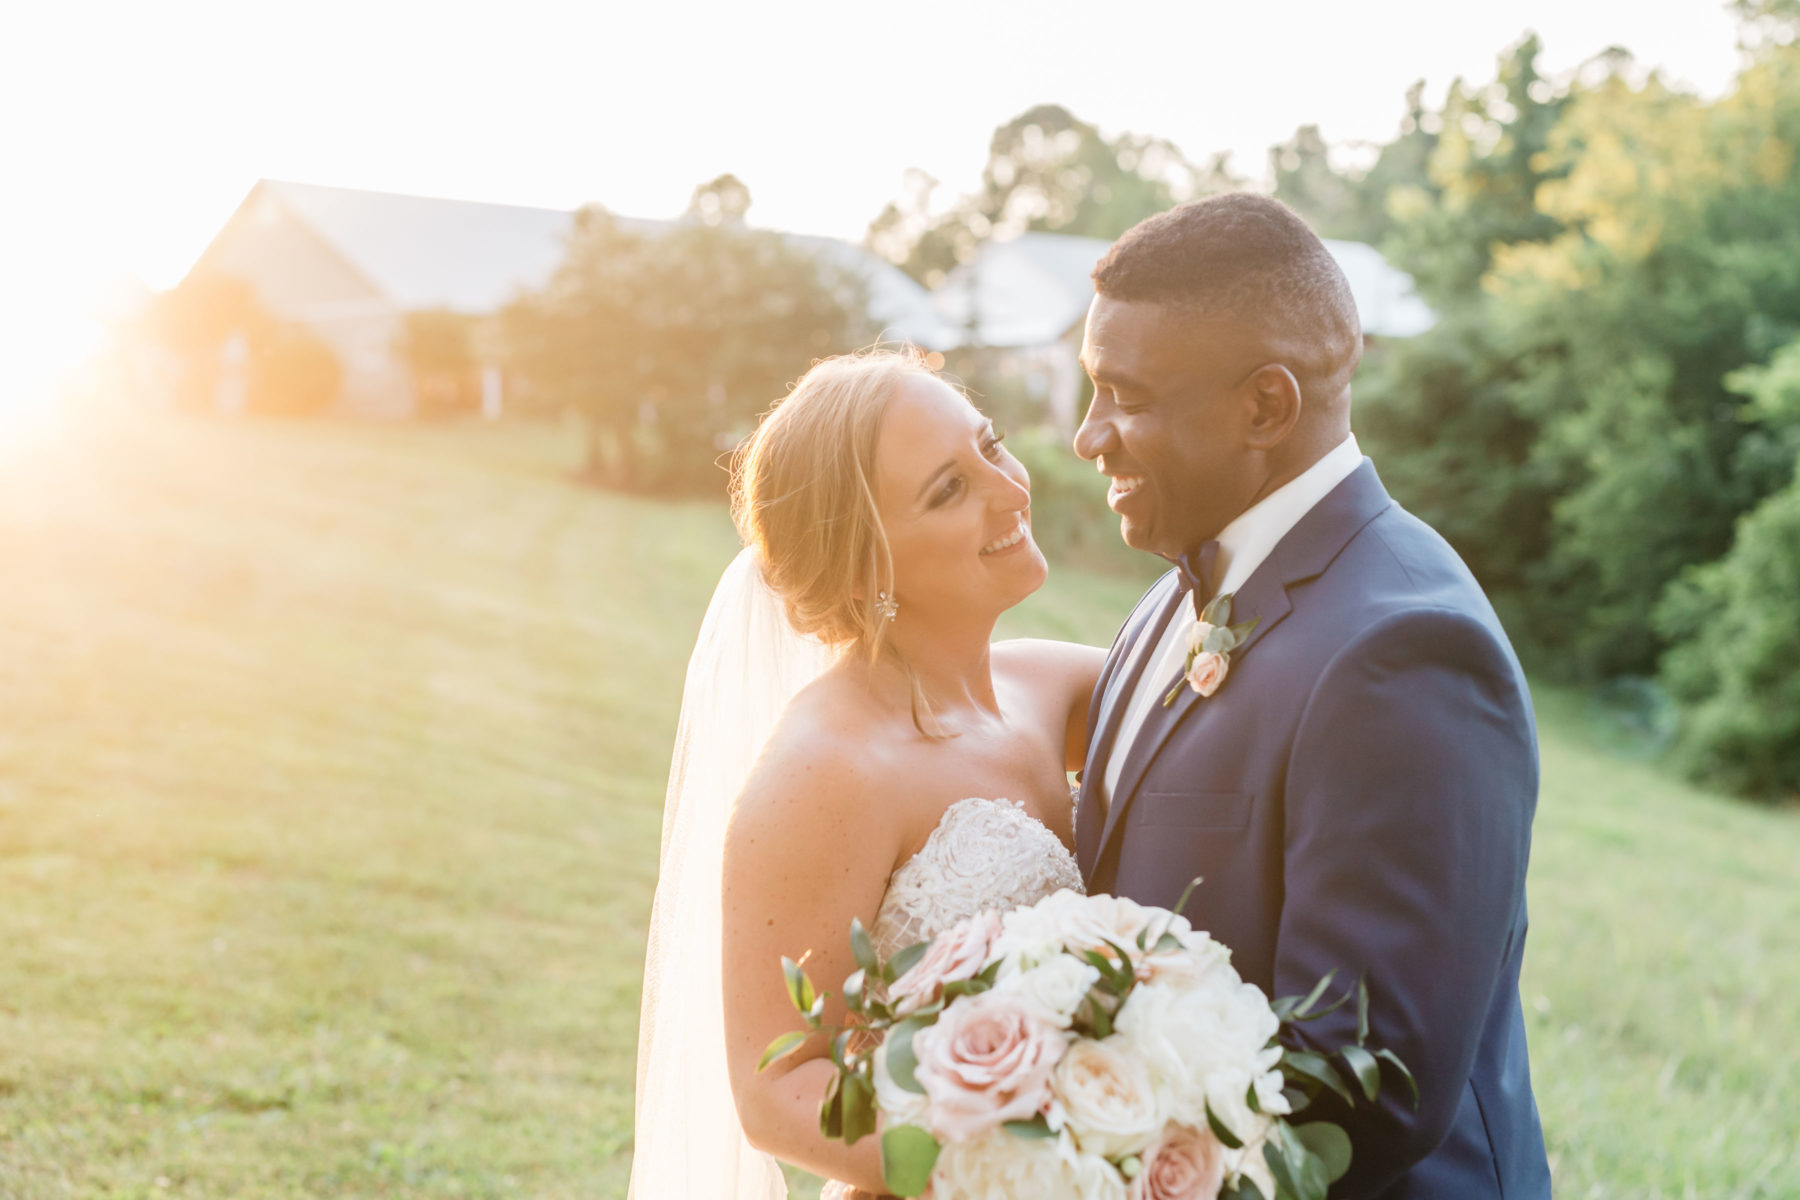 Sophisticated Chic Farm Wedding featured on Nashville Bride Guide